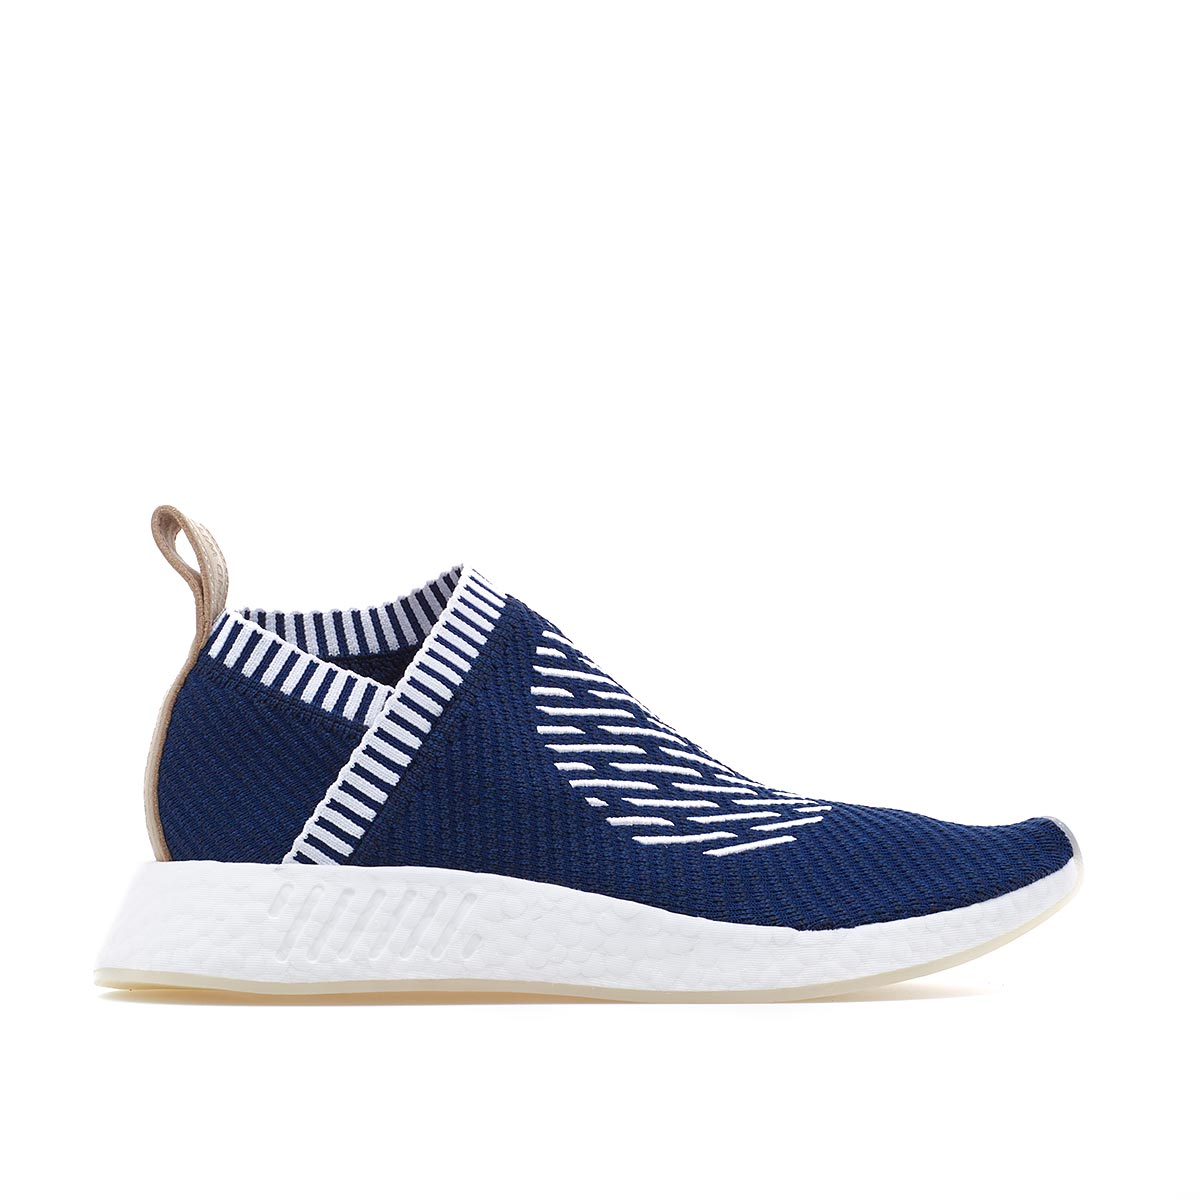 NMD_CS2 PK sneakers